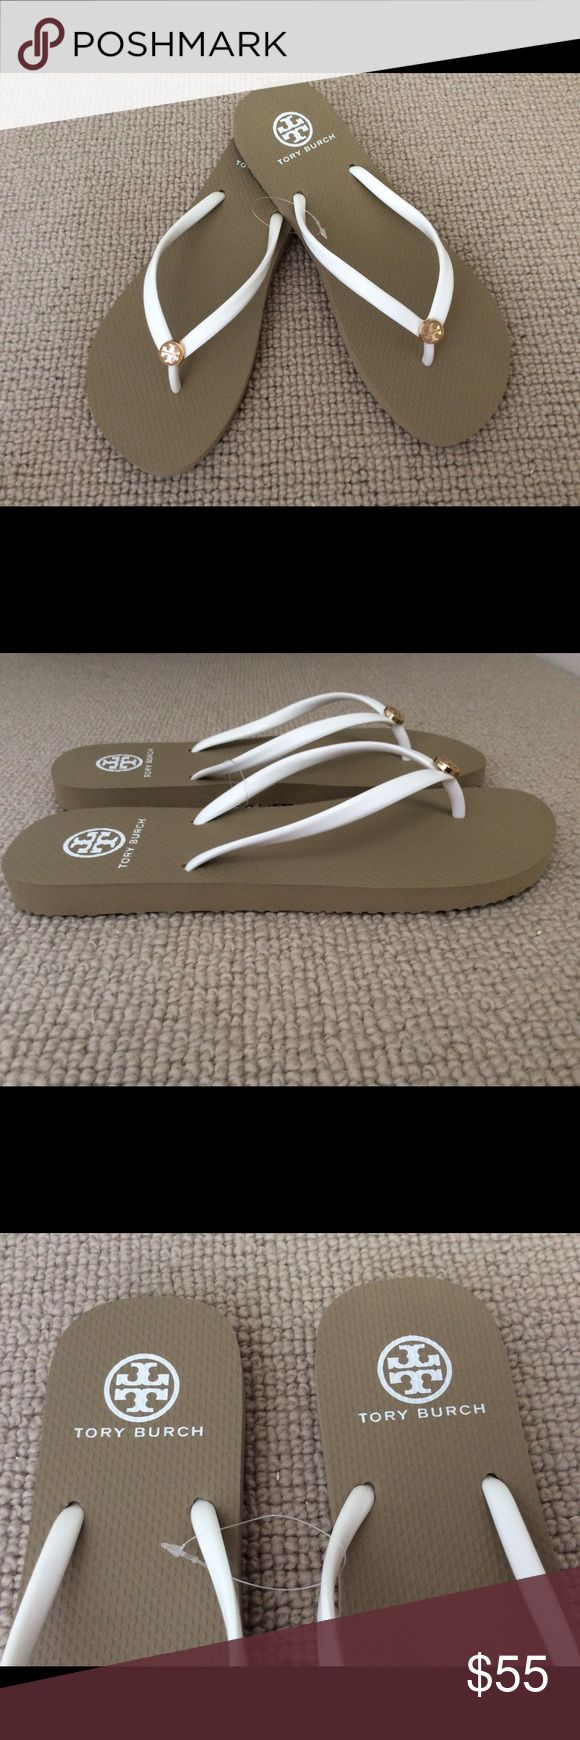 NEW TORY BURCH WHITE/BEIGE FLIP FLOPS SIZE 10 Authentic Tory Burch white beige flip-flops. Enamel logo. The size is 10. Rare and sold out everywhere. Does not come with a box. Thank you for checking out my closet Tory Burch Shoes Sandals